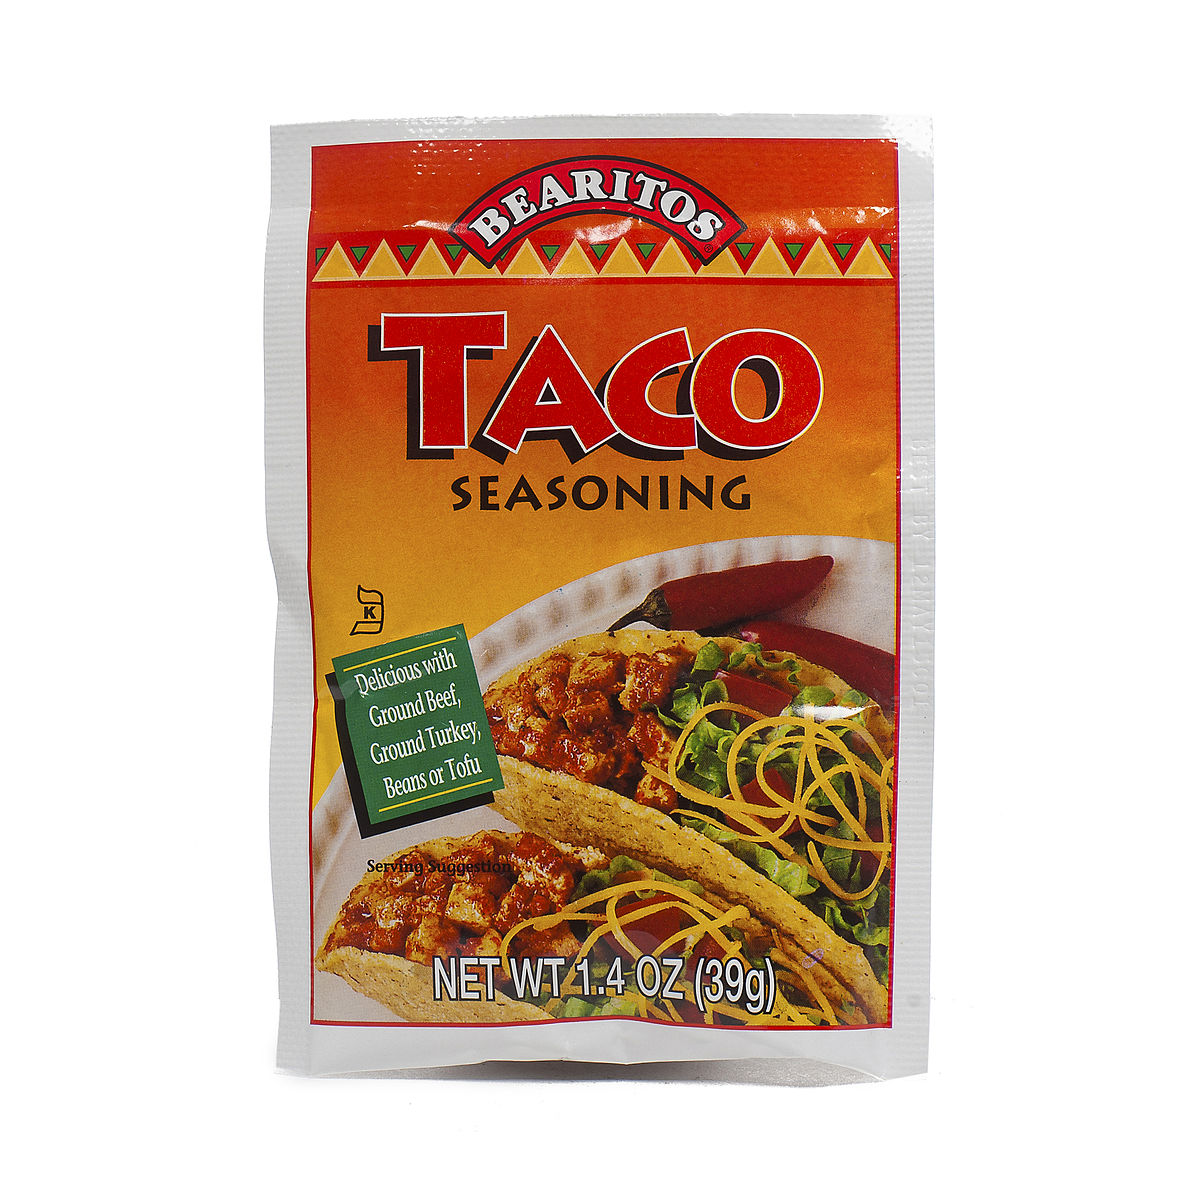 bearitos taco seasoning 1 4 oz package 2 leave a review retail $ 2 15 ...